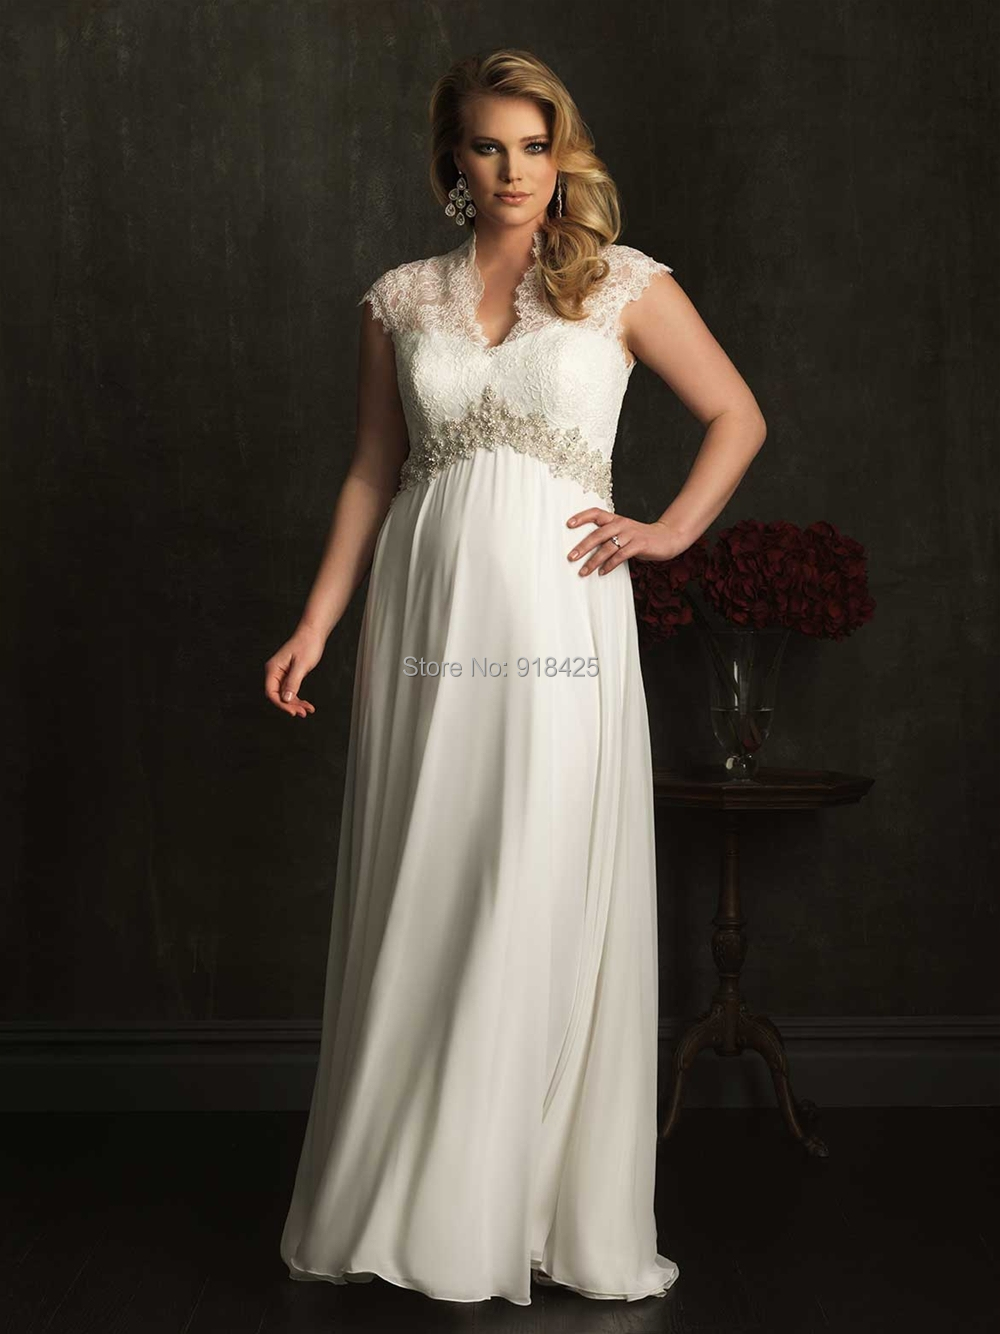 Empire Waist Chiffon Plus Size Wedding Dresses 14